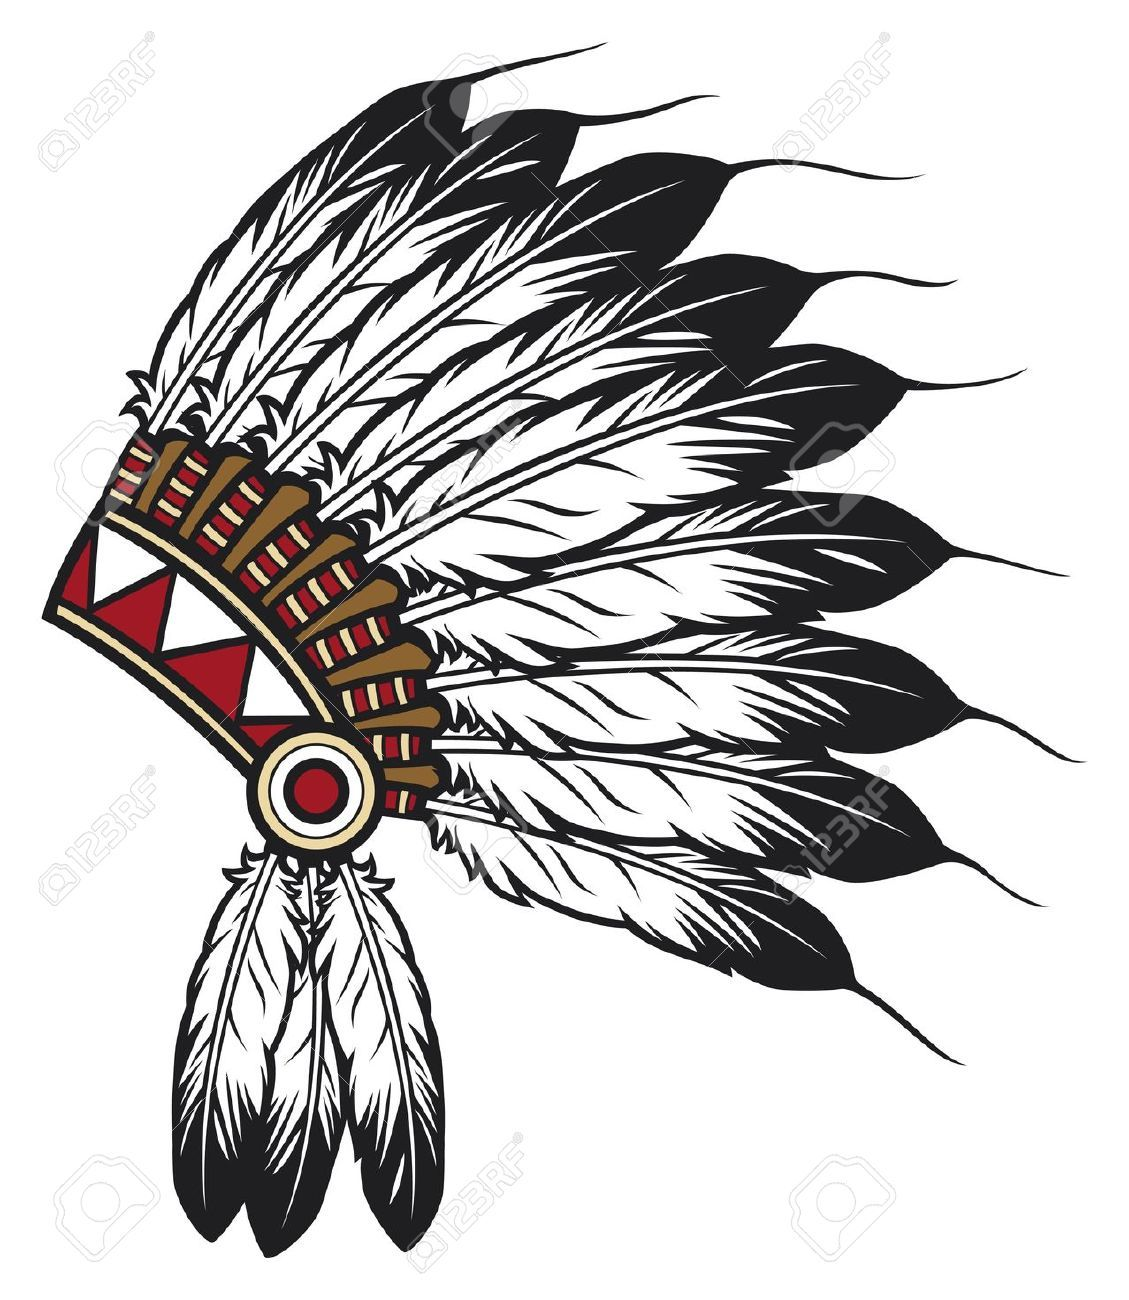 indian headdress clipart painting pinterest tattoo and tatting rh pinterest com indian headdress clipart free Indian Headdress Drawing